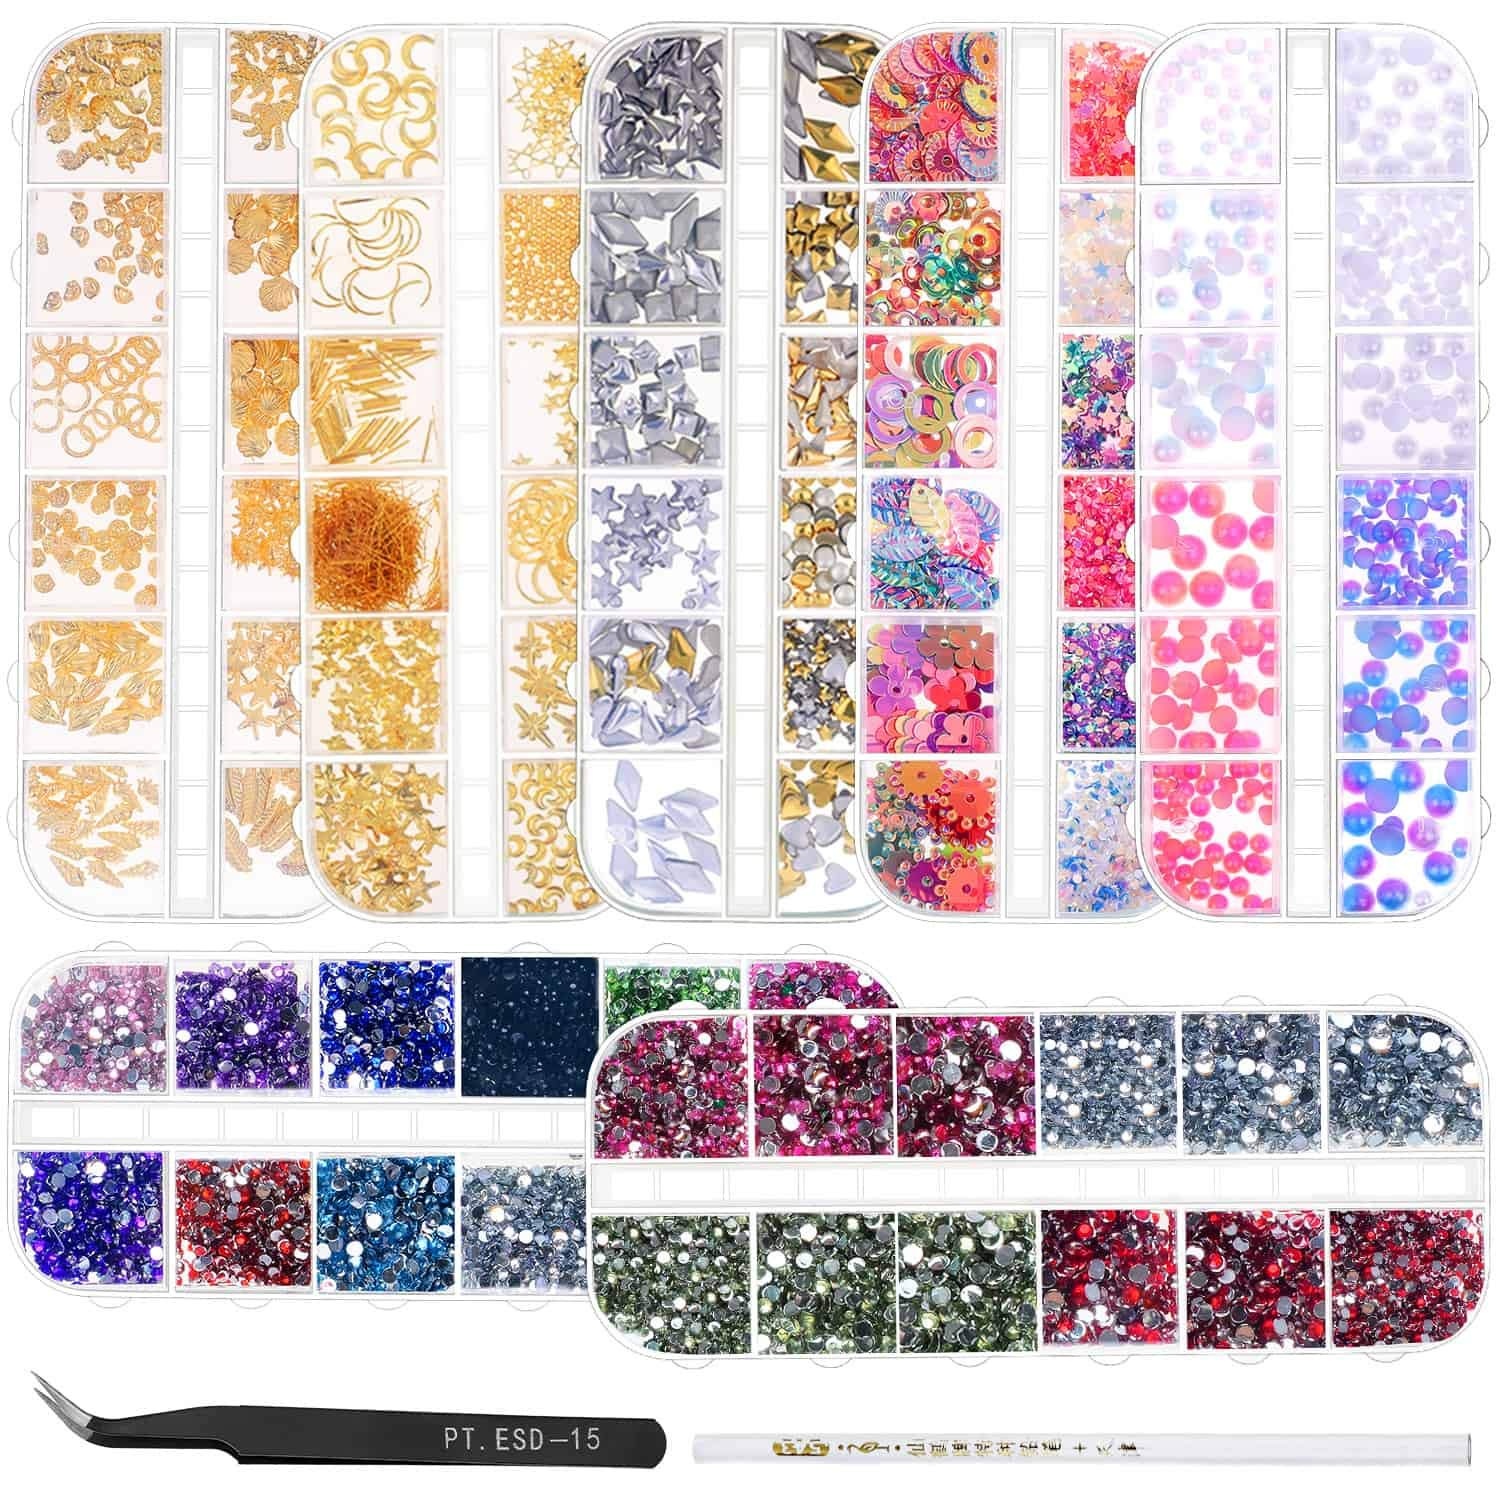 Anezus 7 Boxes Nail Rhinestones Nail Art Supplies Nail Studs 3D Nail Gems Jewels with Pickup Tools for Nails Decoration Makeup Clothes Shoes by anezus